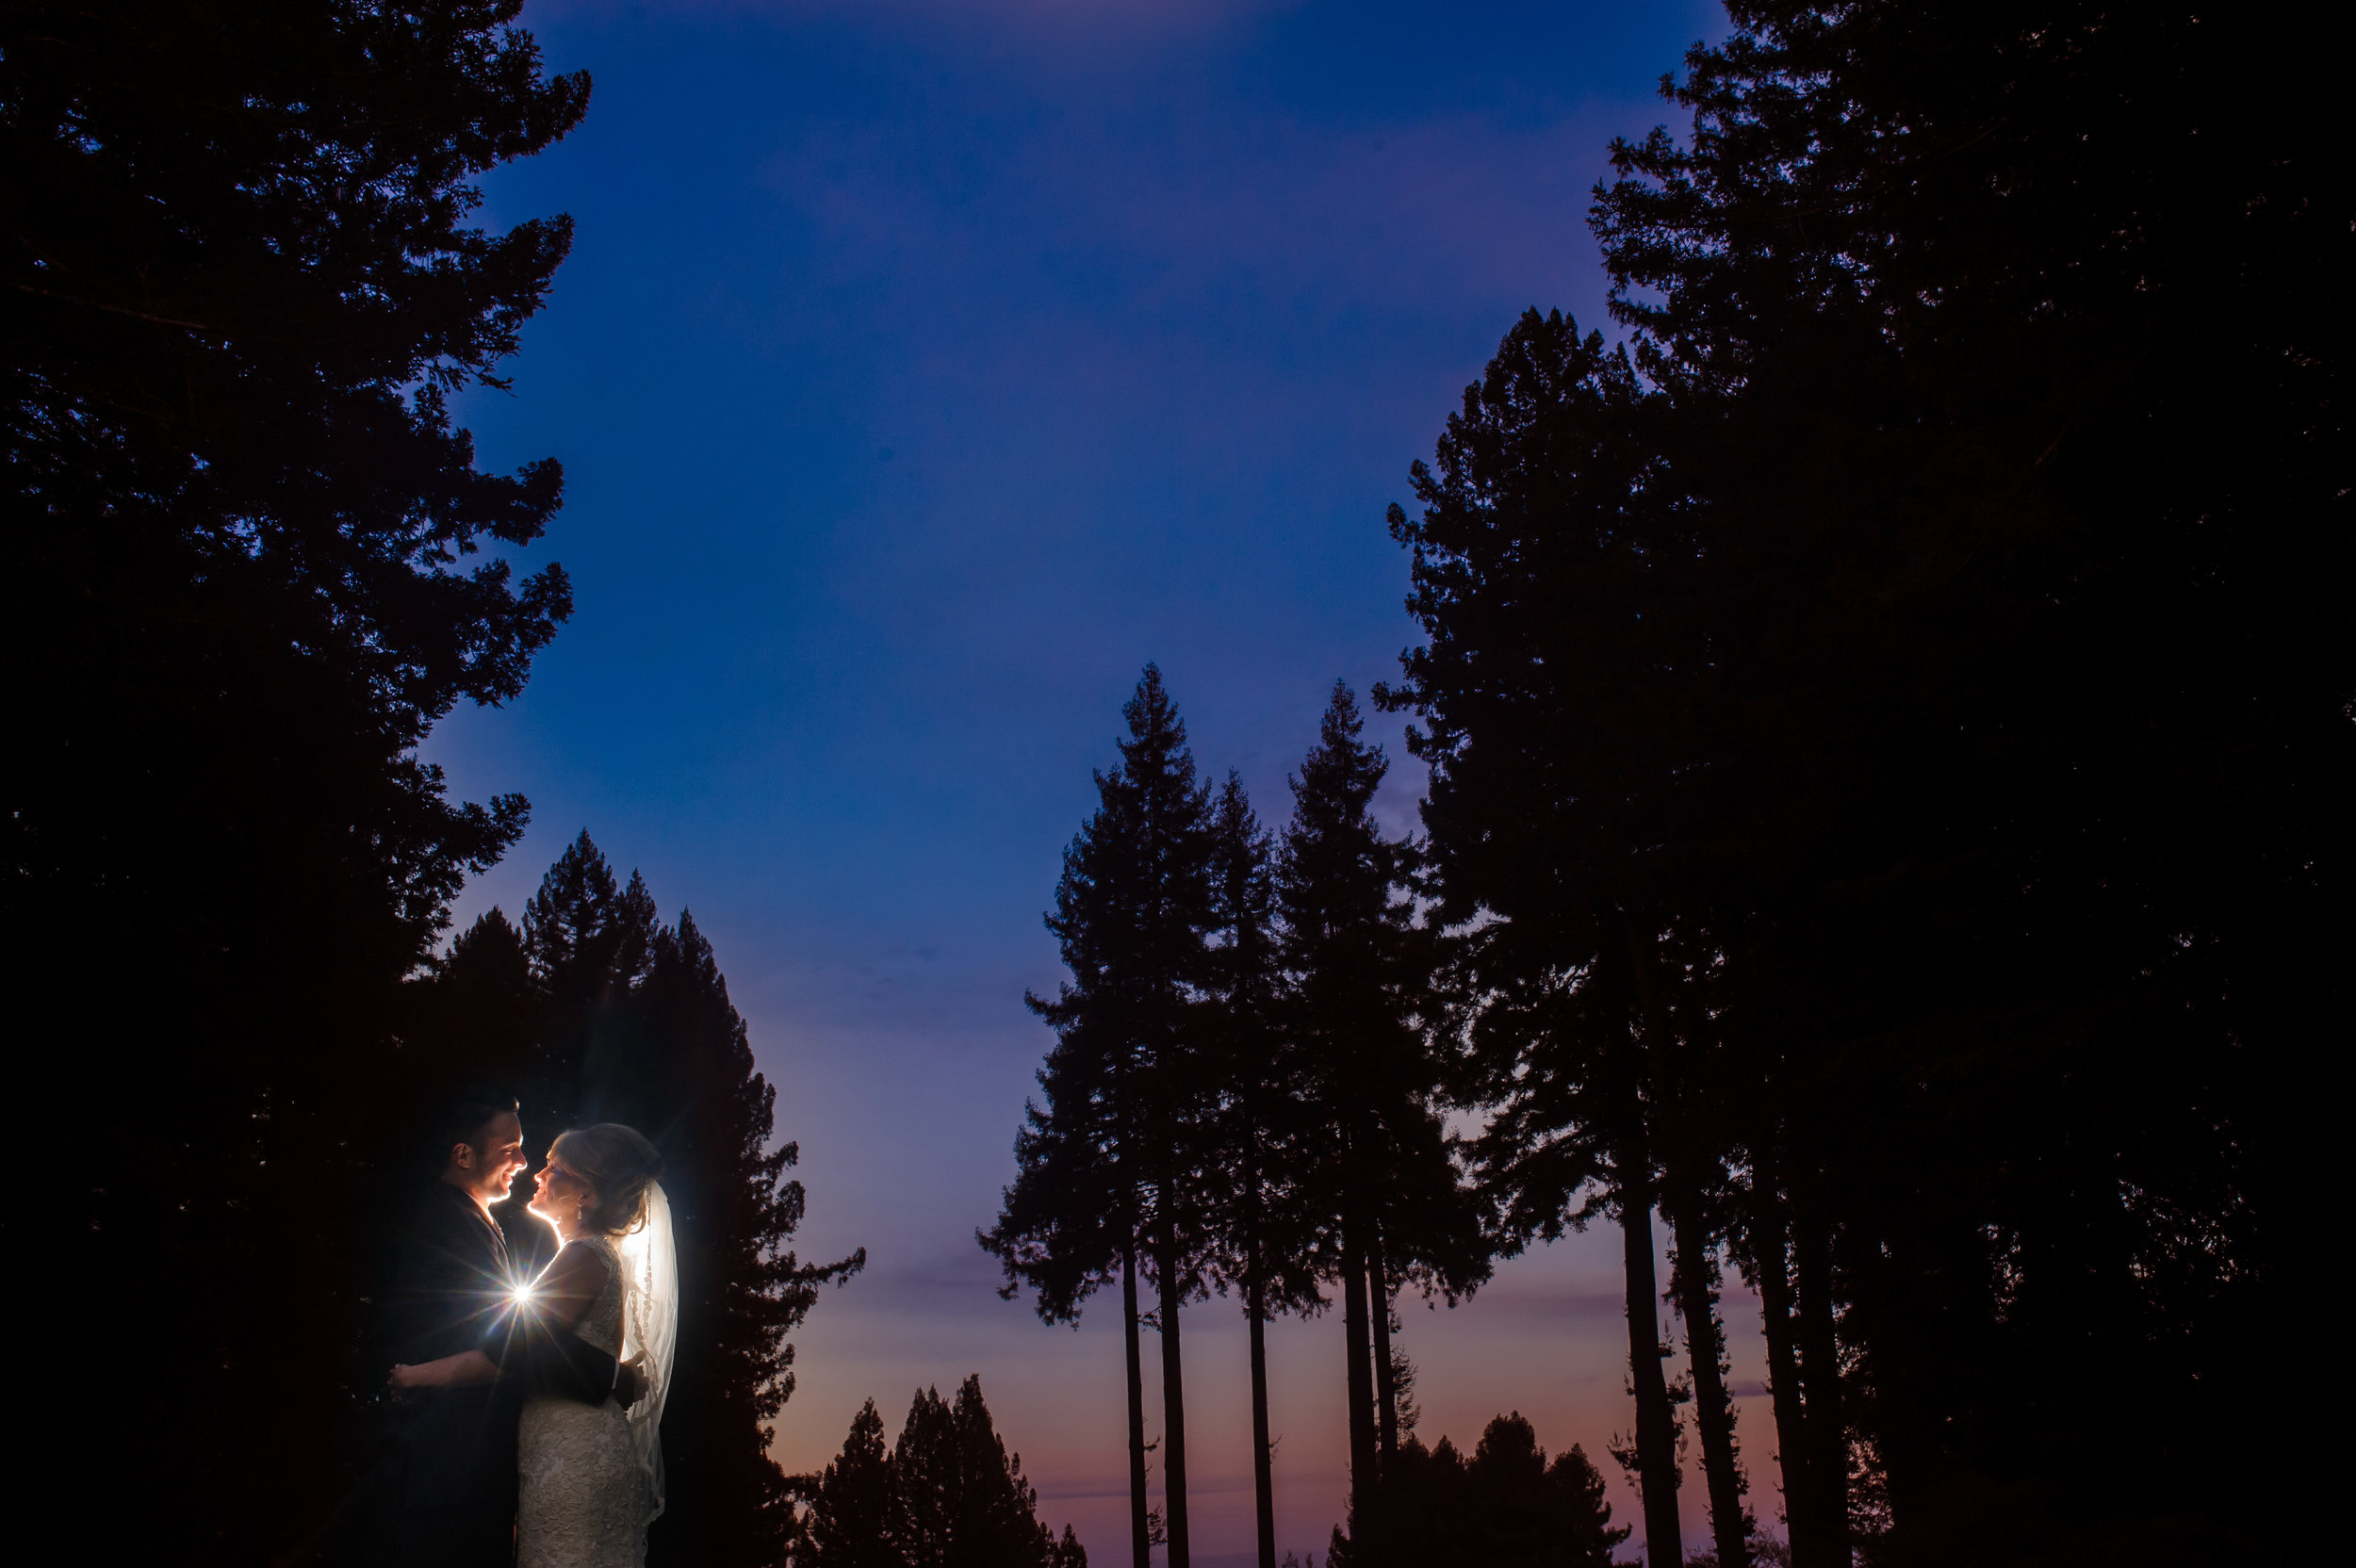 sammi-matt-045-the-mountain-terrace-woodside-wedding-photographer-katherine-nicole-photography.JPG